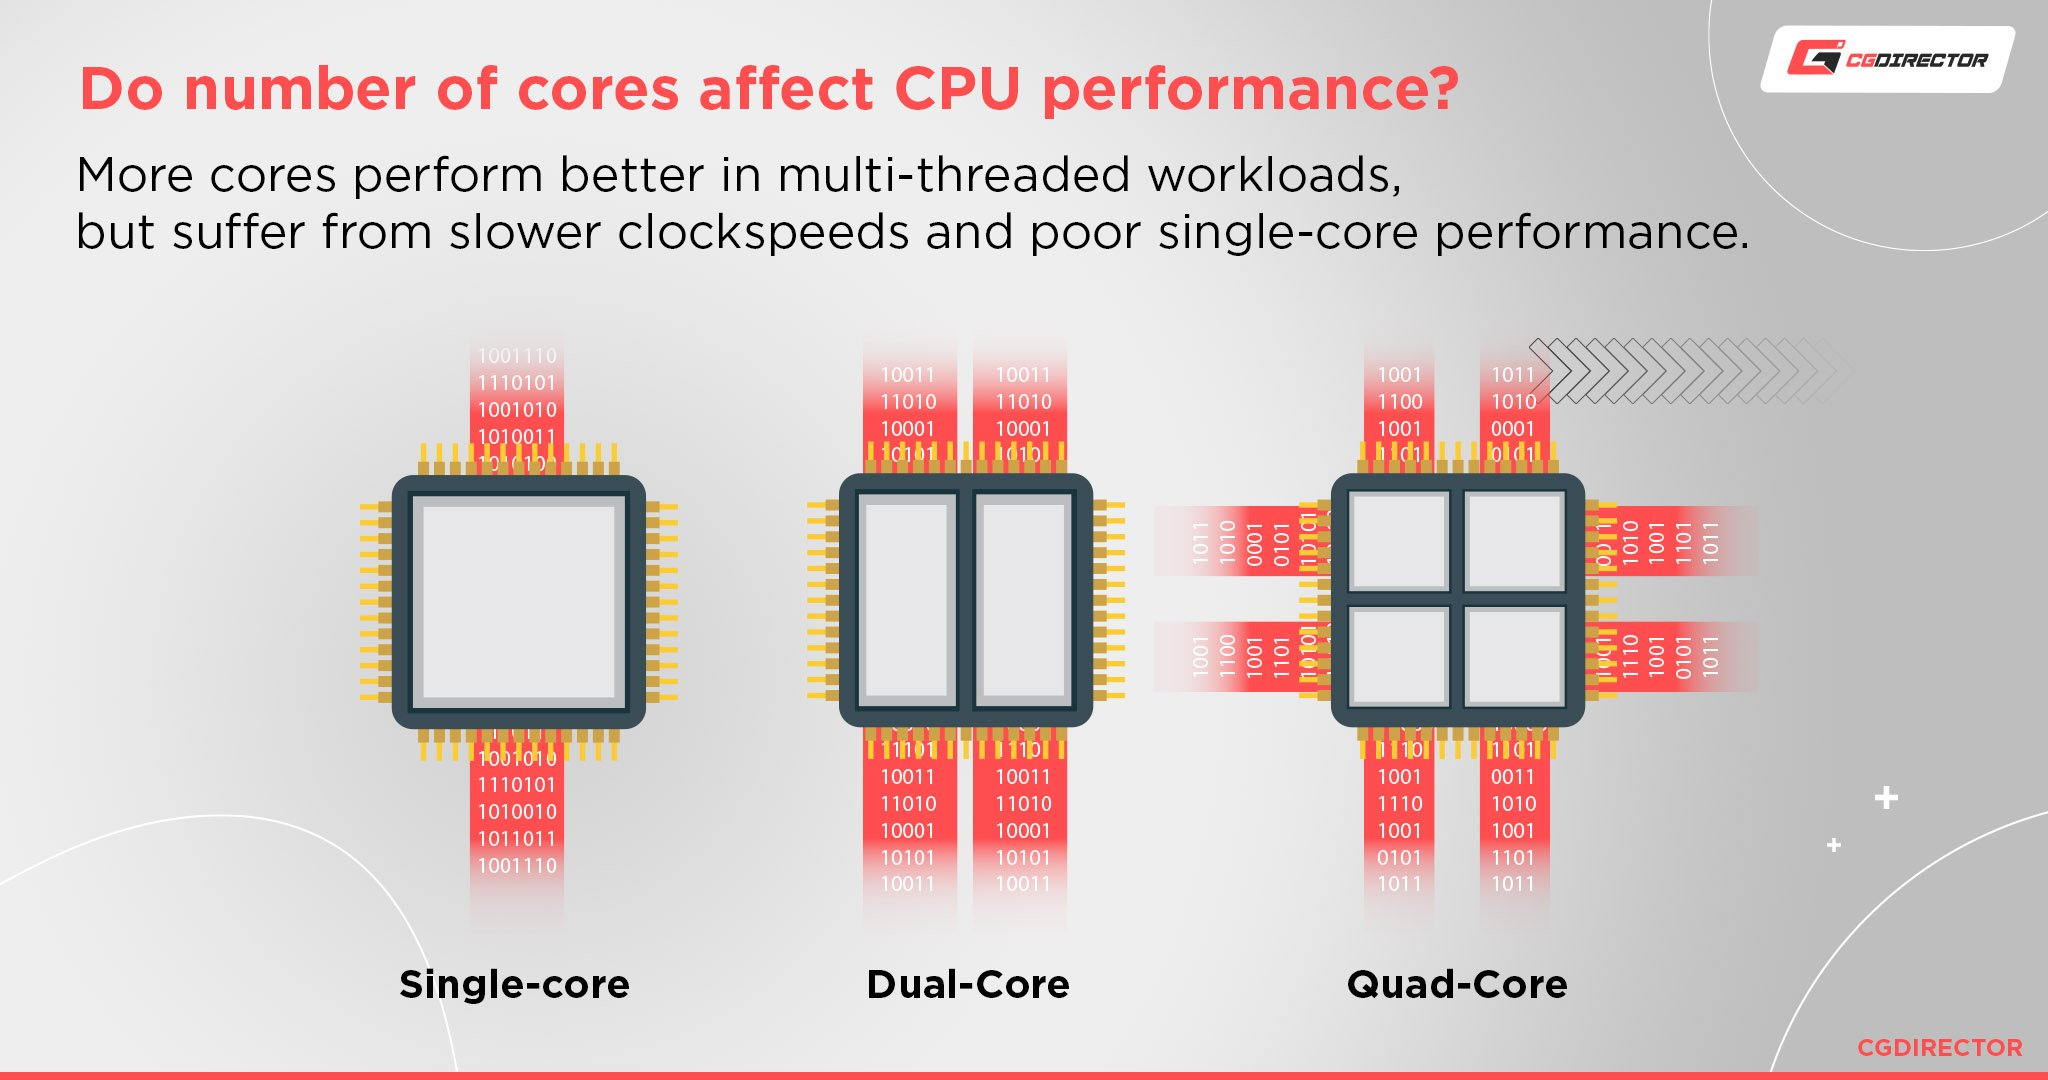 How do number of cores affect CPU performance